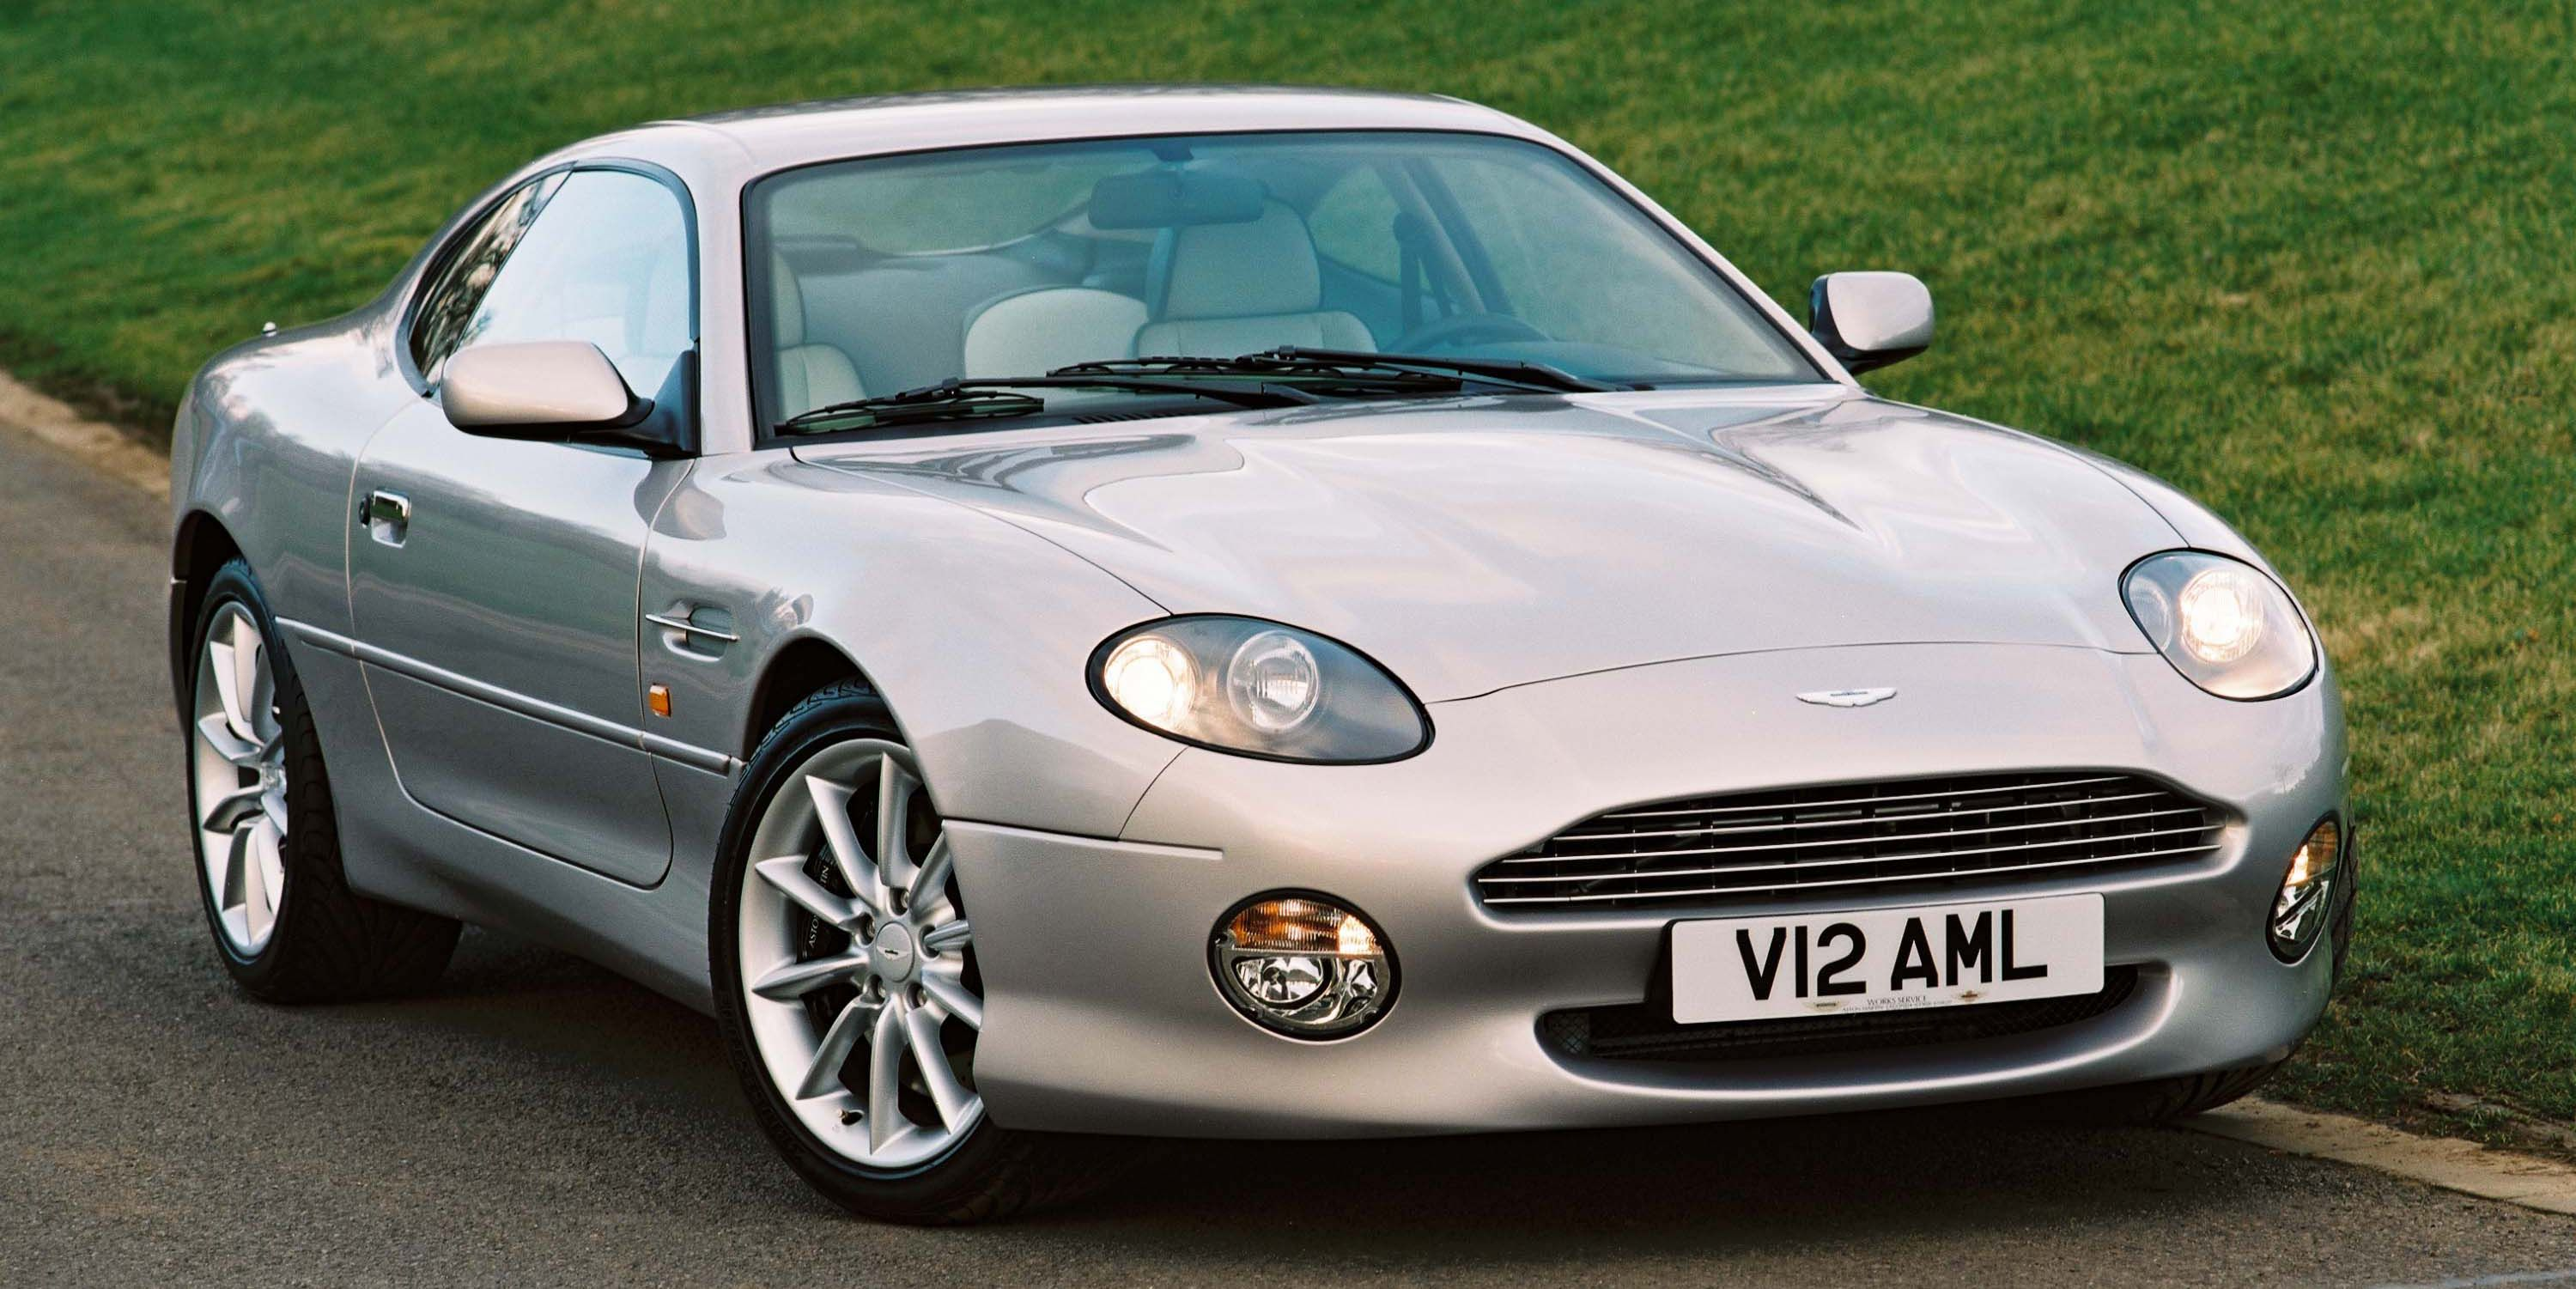 The Aston Martin Db7 Evolved From A 1980s Jaguar F Type That Never Happened